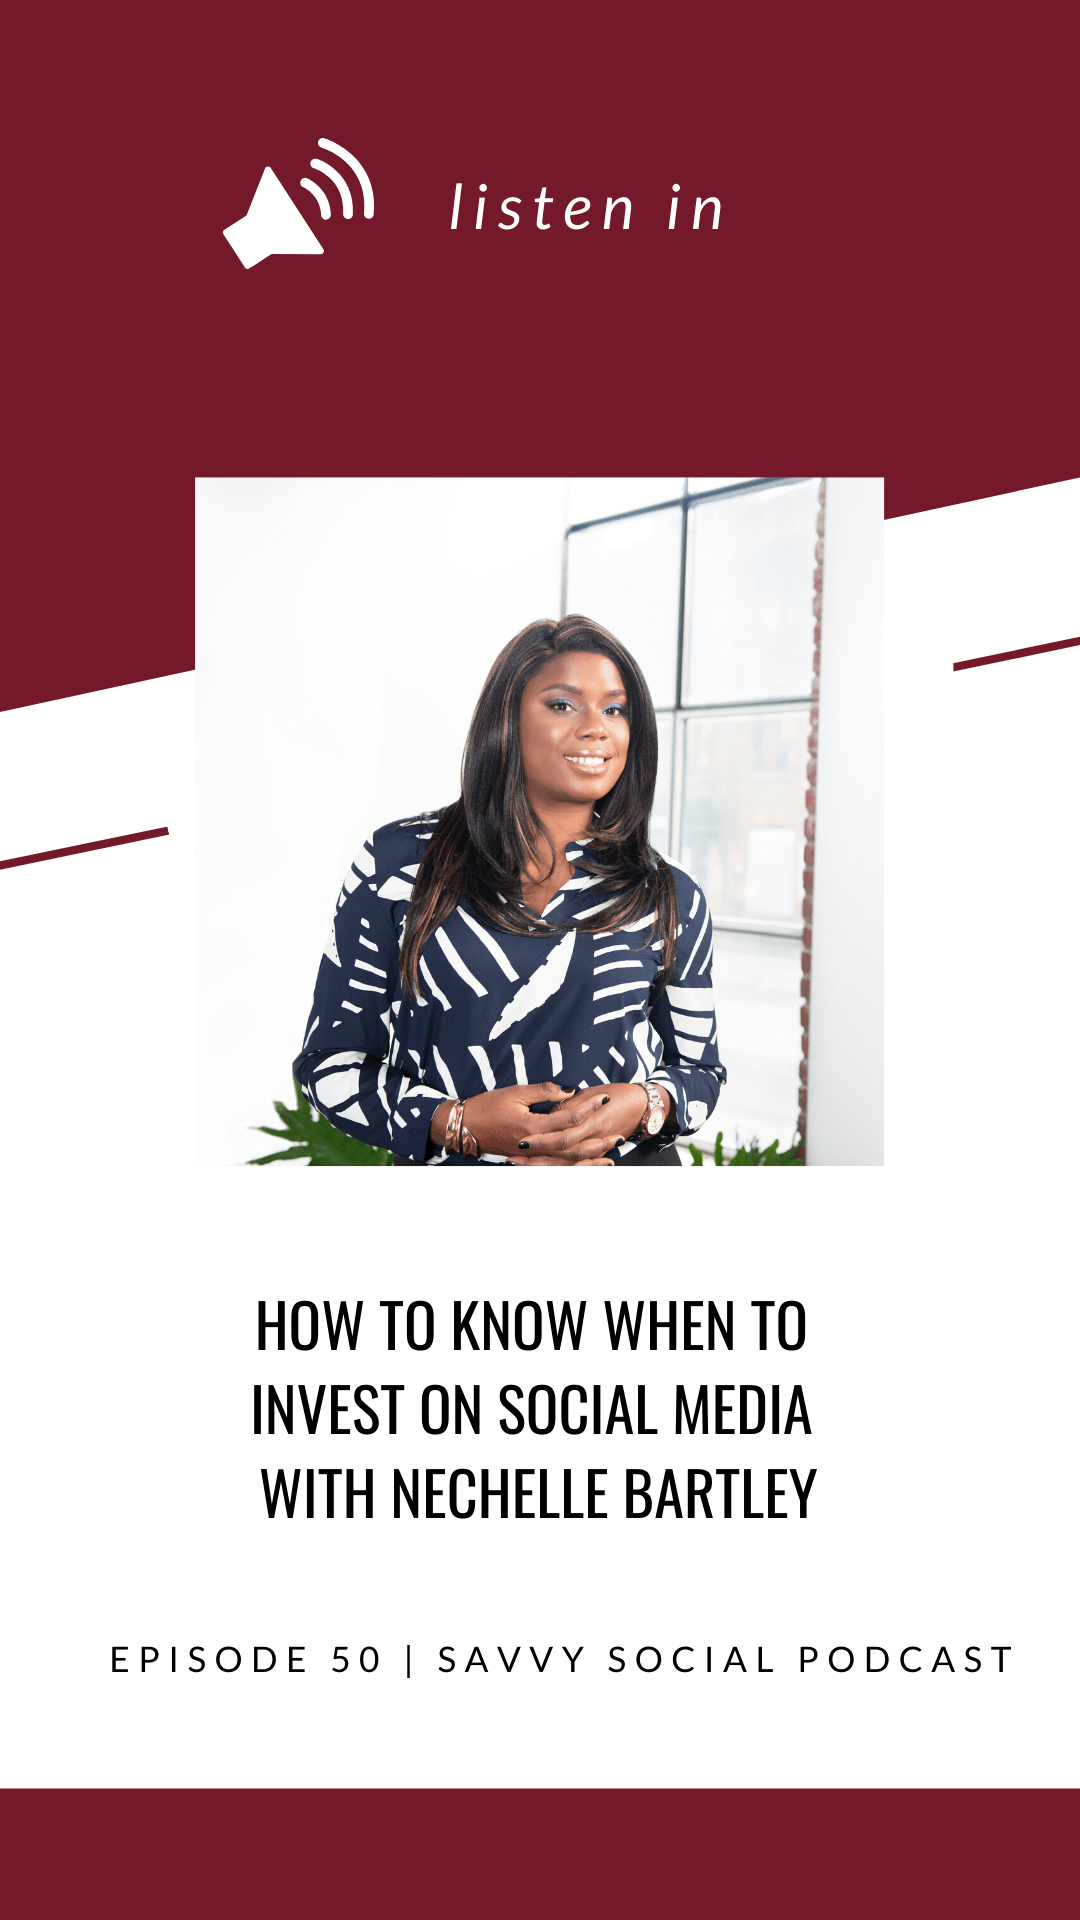 How to Know When to Invest on Social Media with Nechelle Bartley